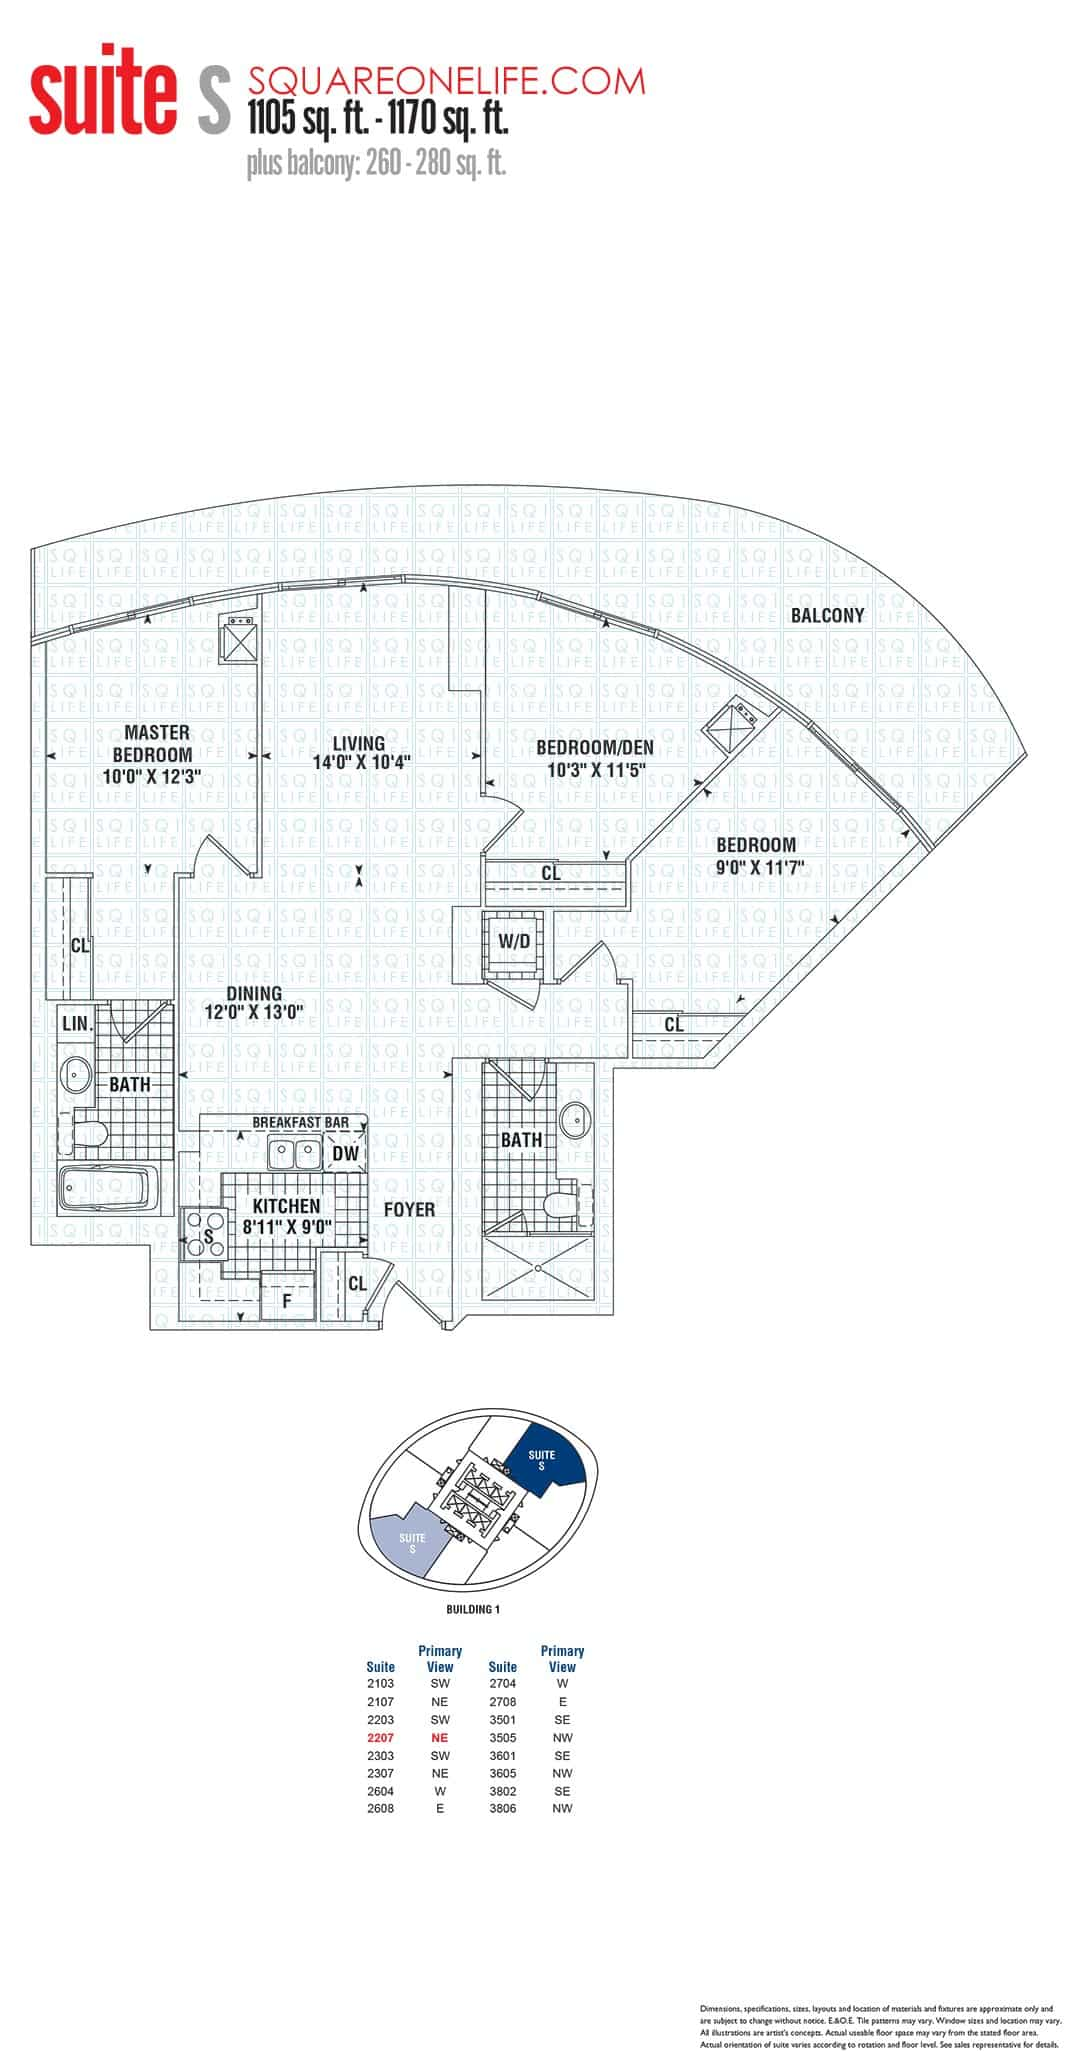 50-Absolute-60-Absolute-Condos-Floorplan-Suite-S-3-Bed-2-Bath marilyn monroe condos Marilyn Monroe Condos 50 Absolute 60 Absolute Condos Floorplan Suite S 3 Bed 2 Bath